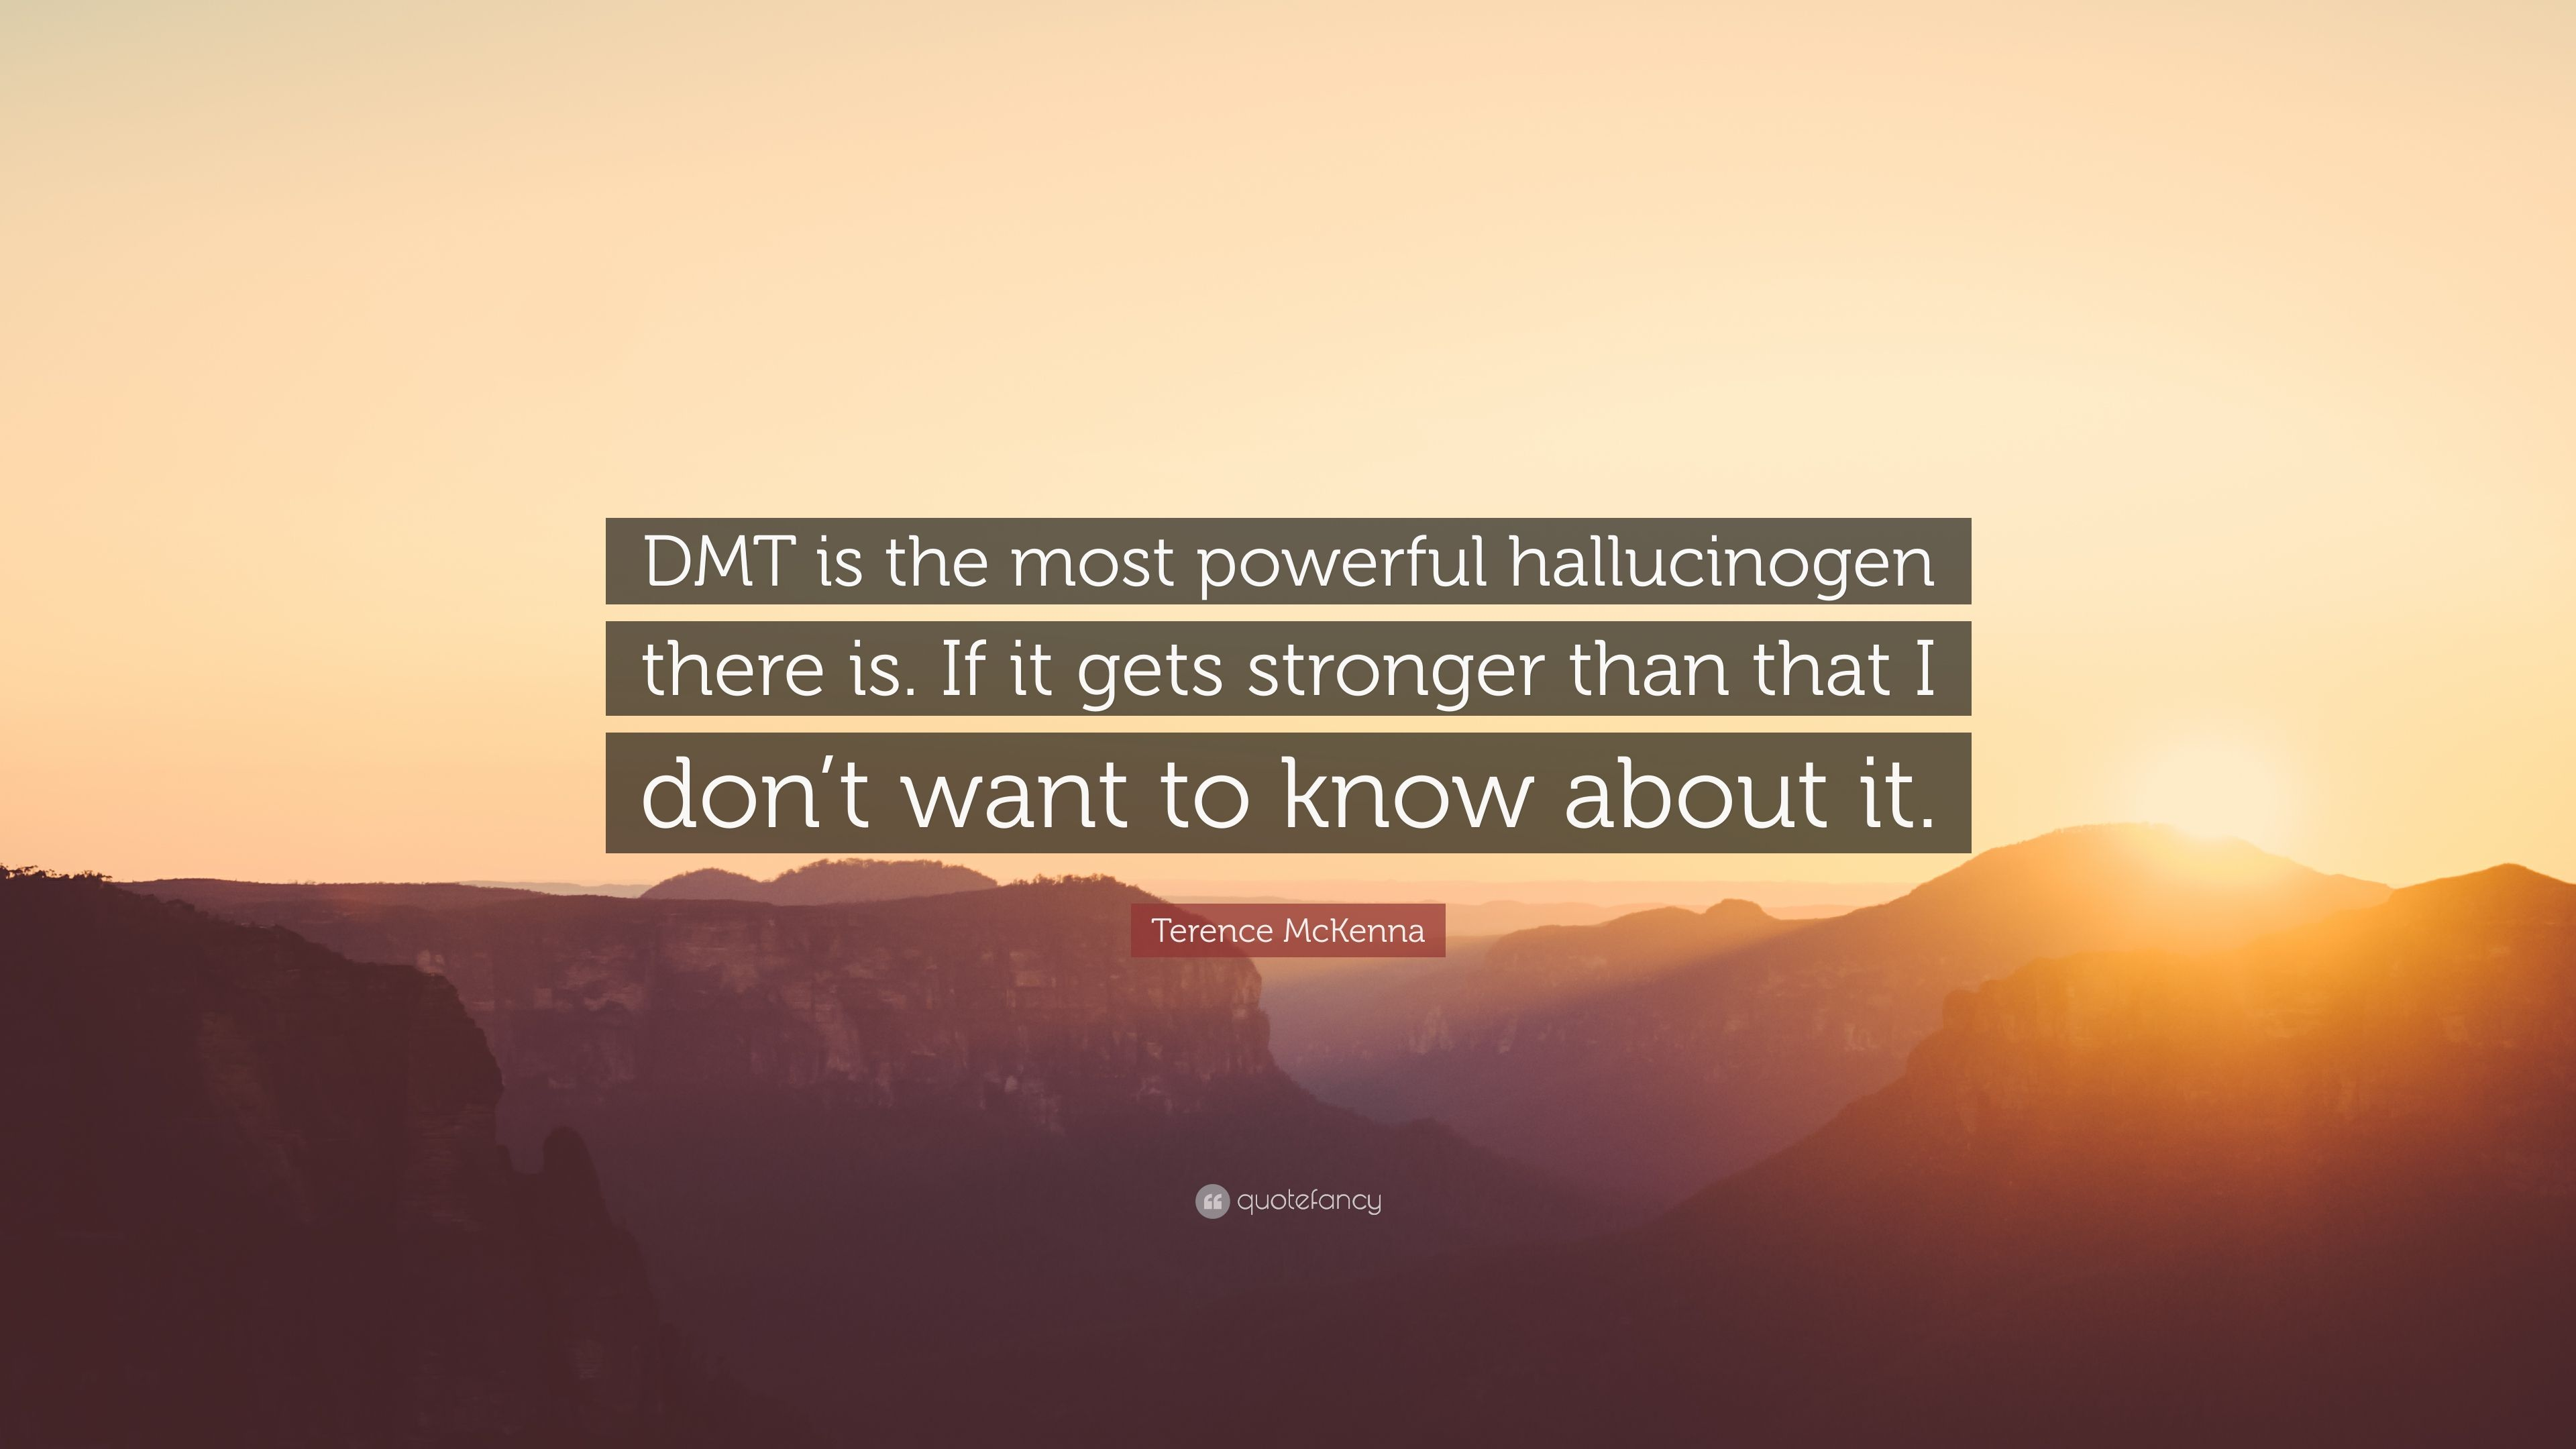 Terrence Mckenna Wallpaper Quotes Terence Mckenna Quote Dmt Is The Most Powerful